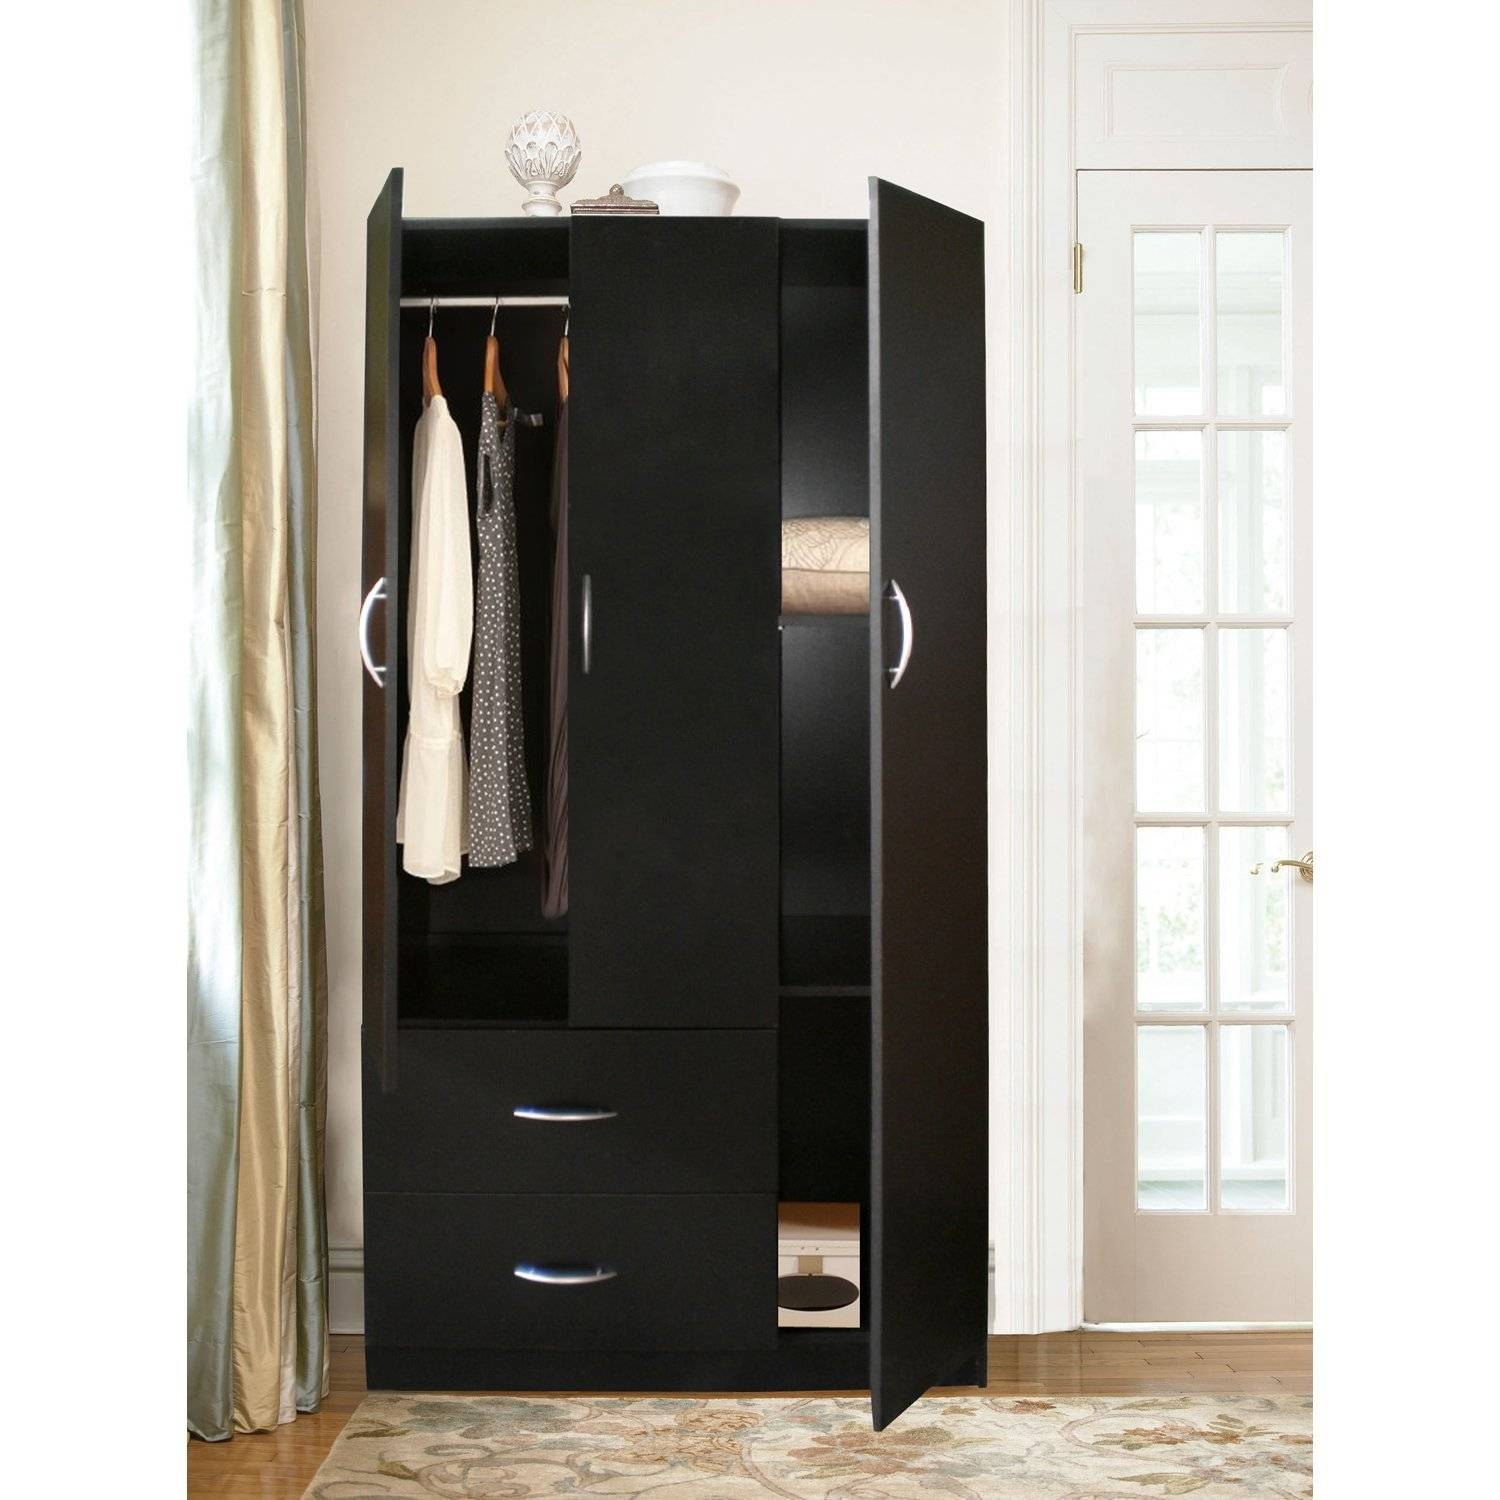 Furniture: Fancy Wardrobe Armoire For Wardrobe Organizer Idea regarding Wardrobes With Drawers and Shelves (Image 12 of 30)